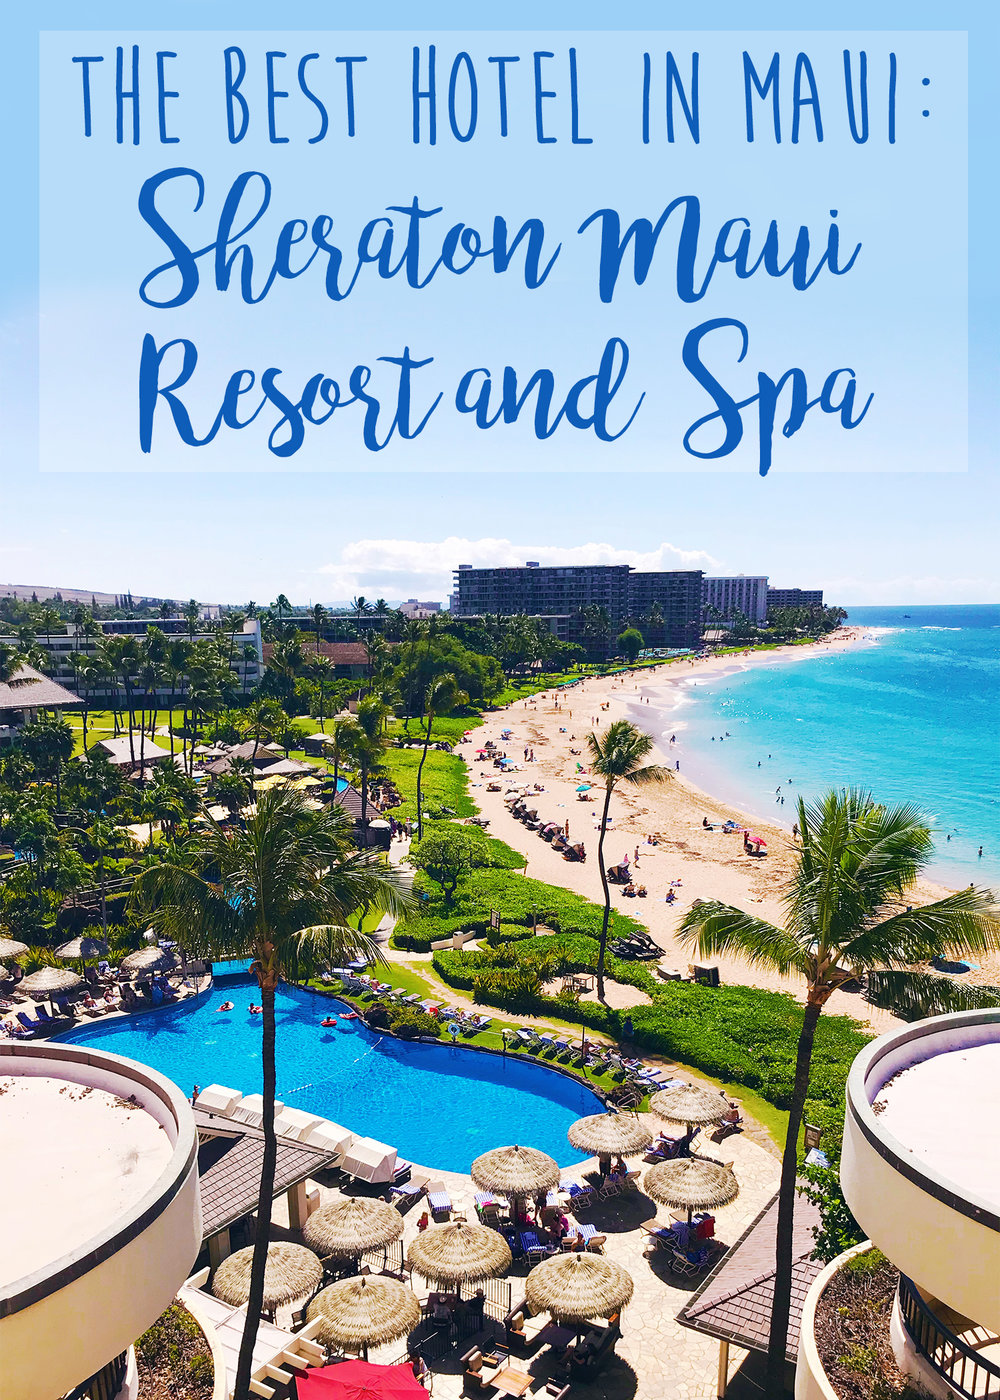 The Best Hotel in Maui, Sheraton Maui Resort, Favorite Hotel